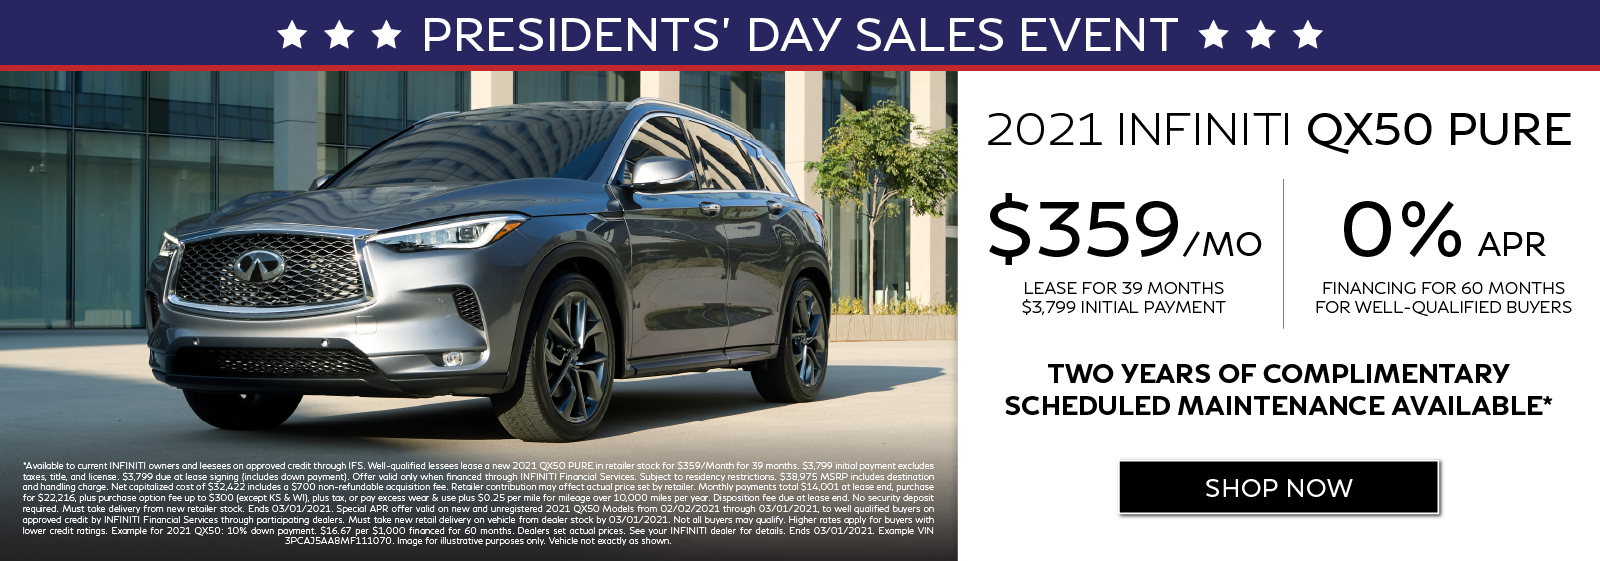 Well-qualified customers can lease a new 2021 QX50 PURE for $359 per month for 39 months OR get 0% APR financing for 60 months. Two years of complimentary scheduled maintenance available.* Click to shop now.